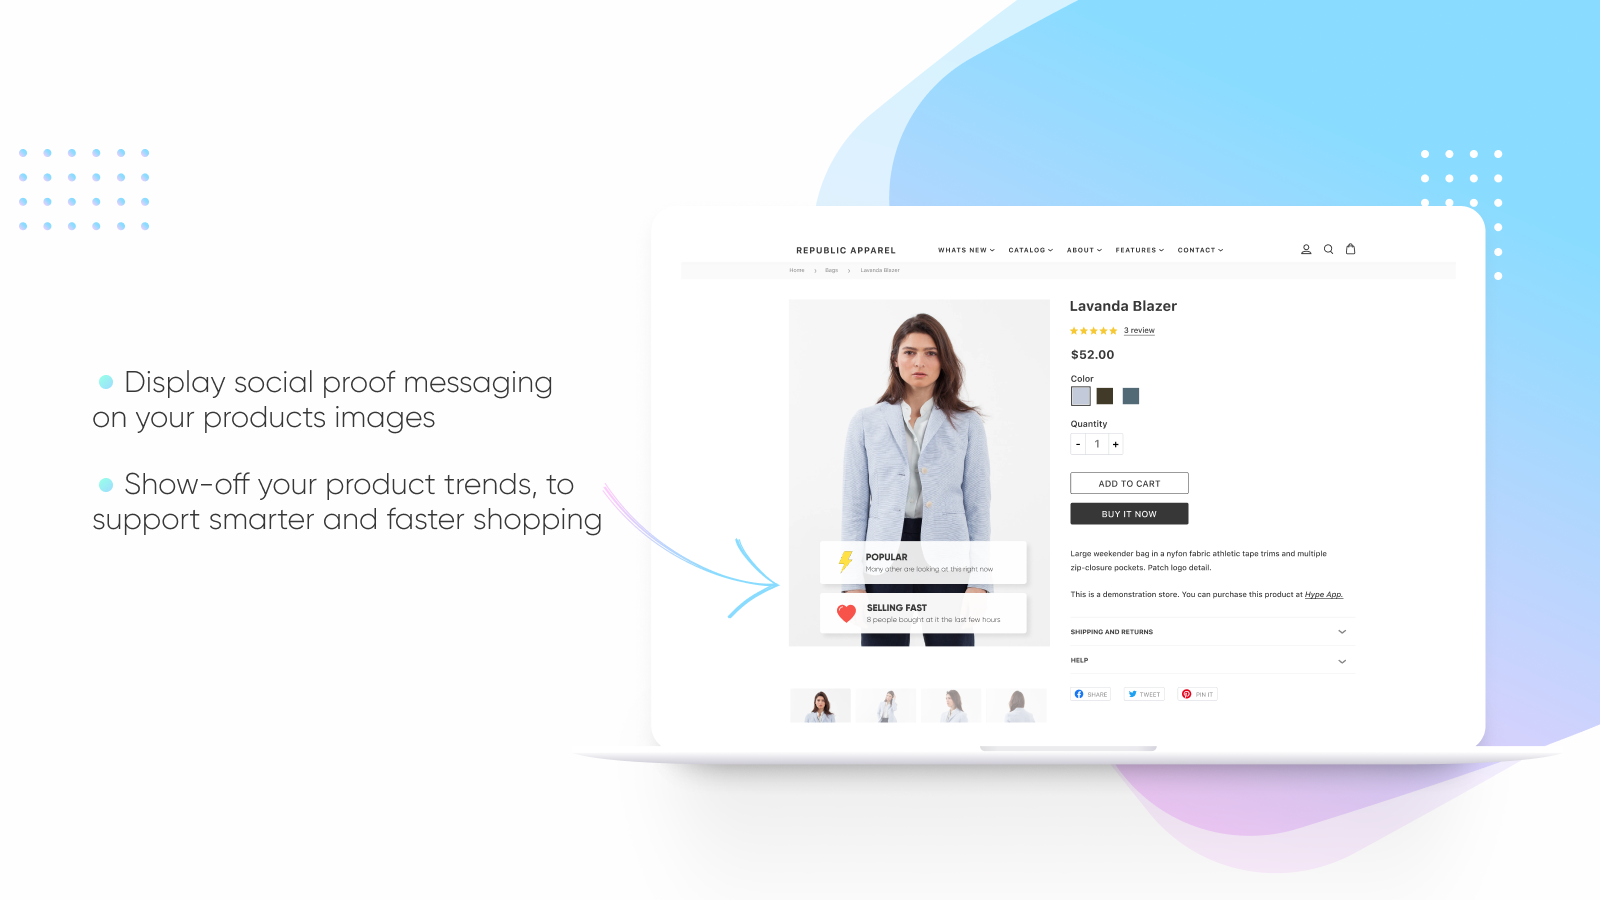 Display social proof messaging on product images